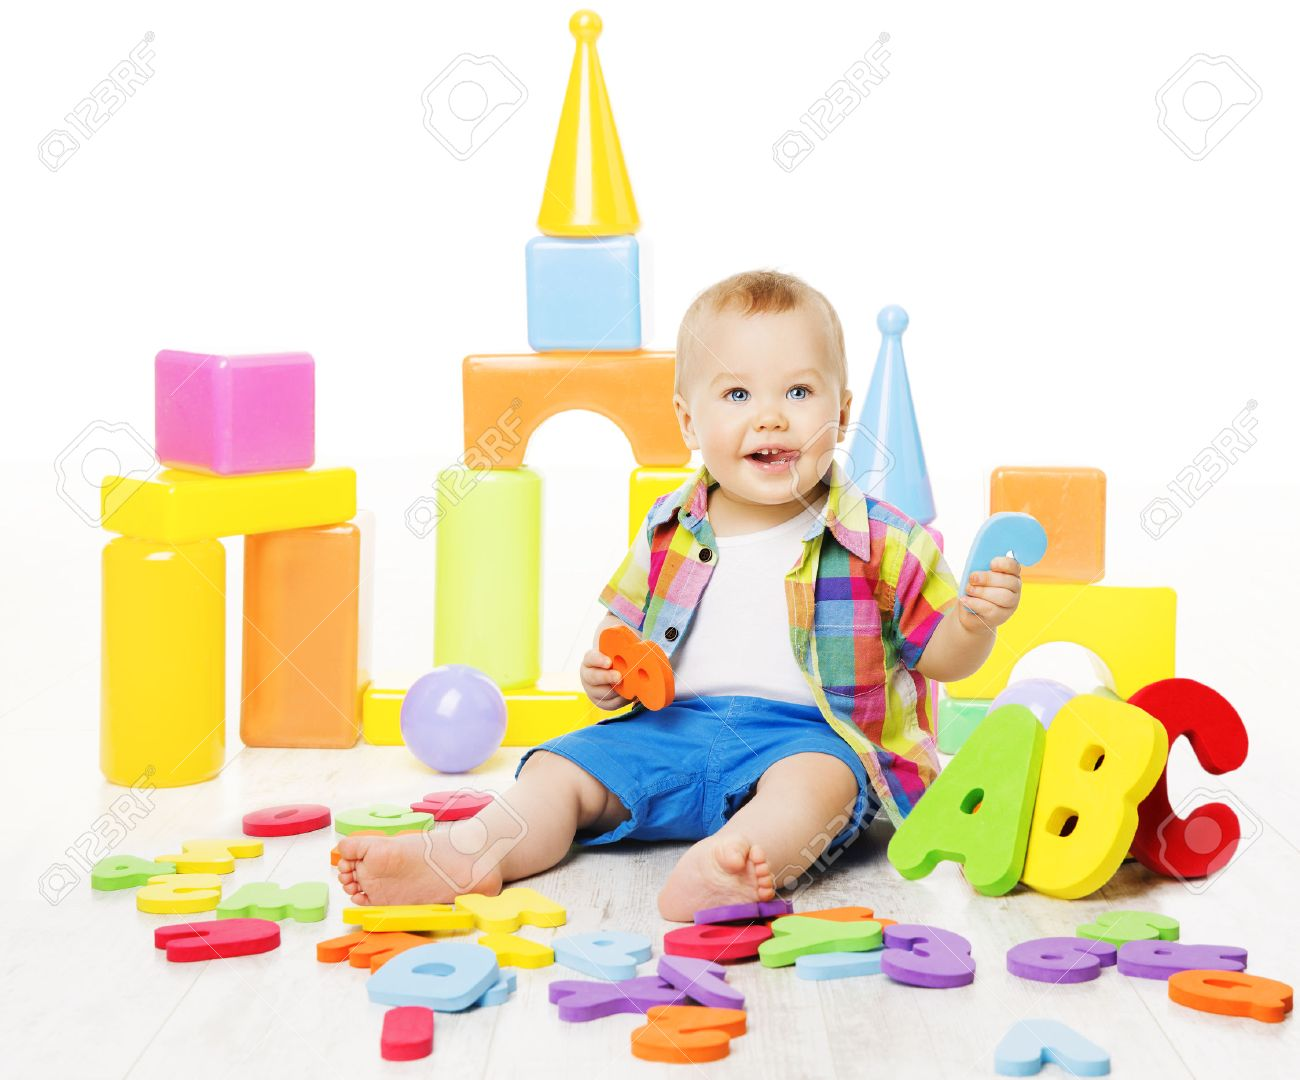 Baby Educational Toys Kid Play Abc Colorful Letters Children Stock Photo Picture And Royalty Free Image Image 52548677